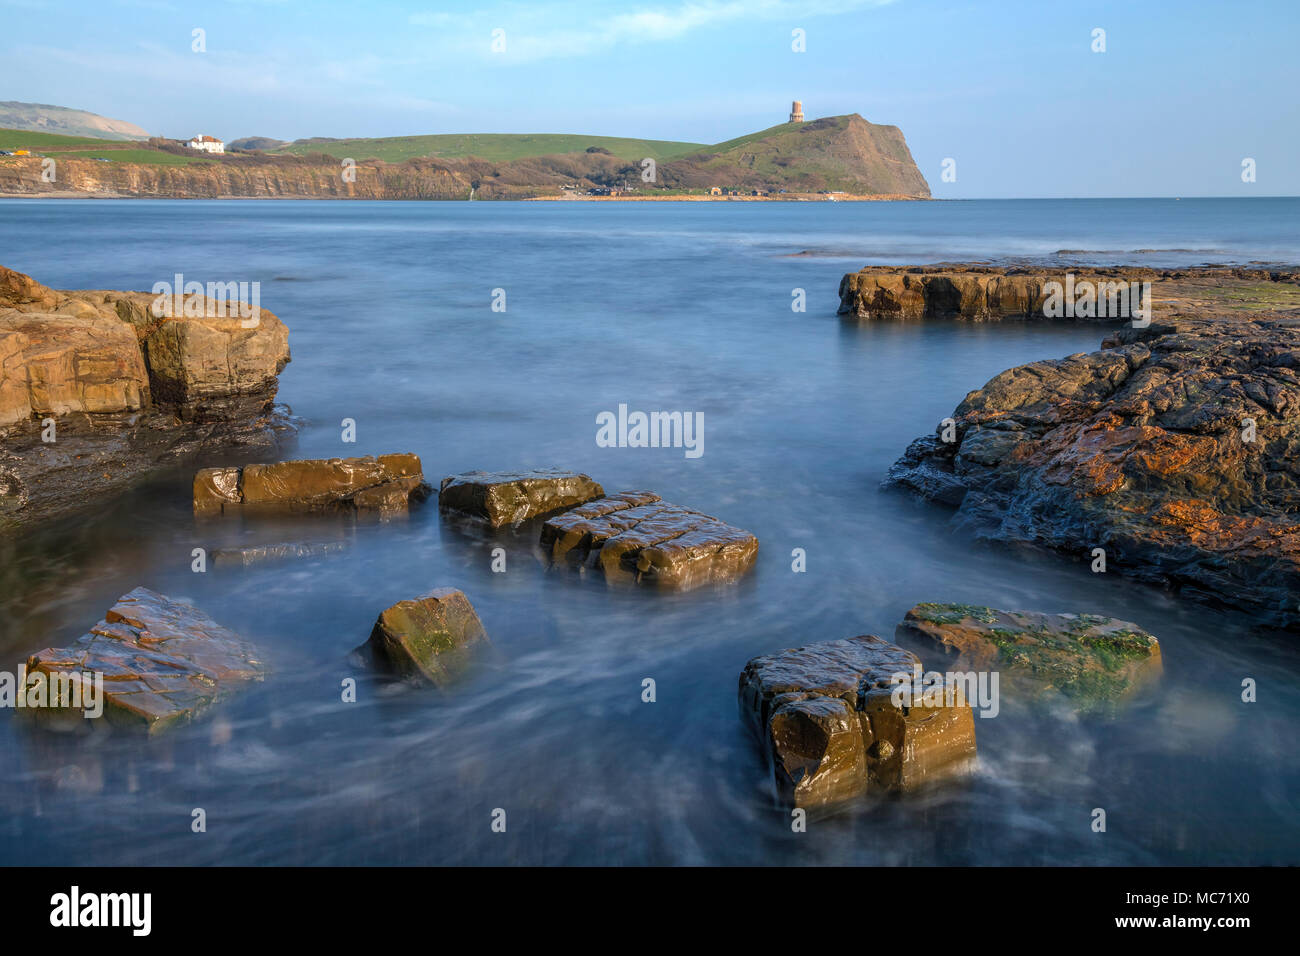 Kimmeridge Bay, Clavell Tower, Jurassic Coast, Dorset, England, UK - Stock Image